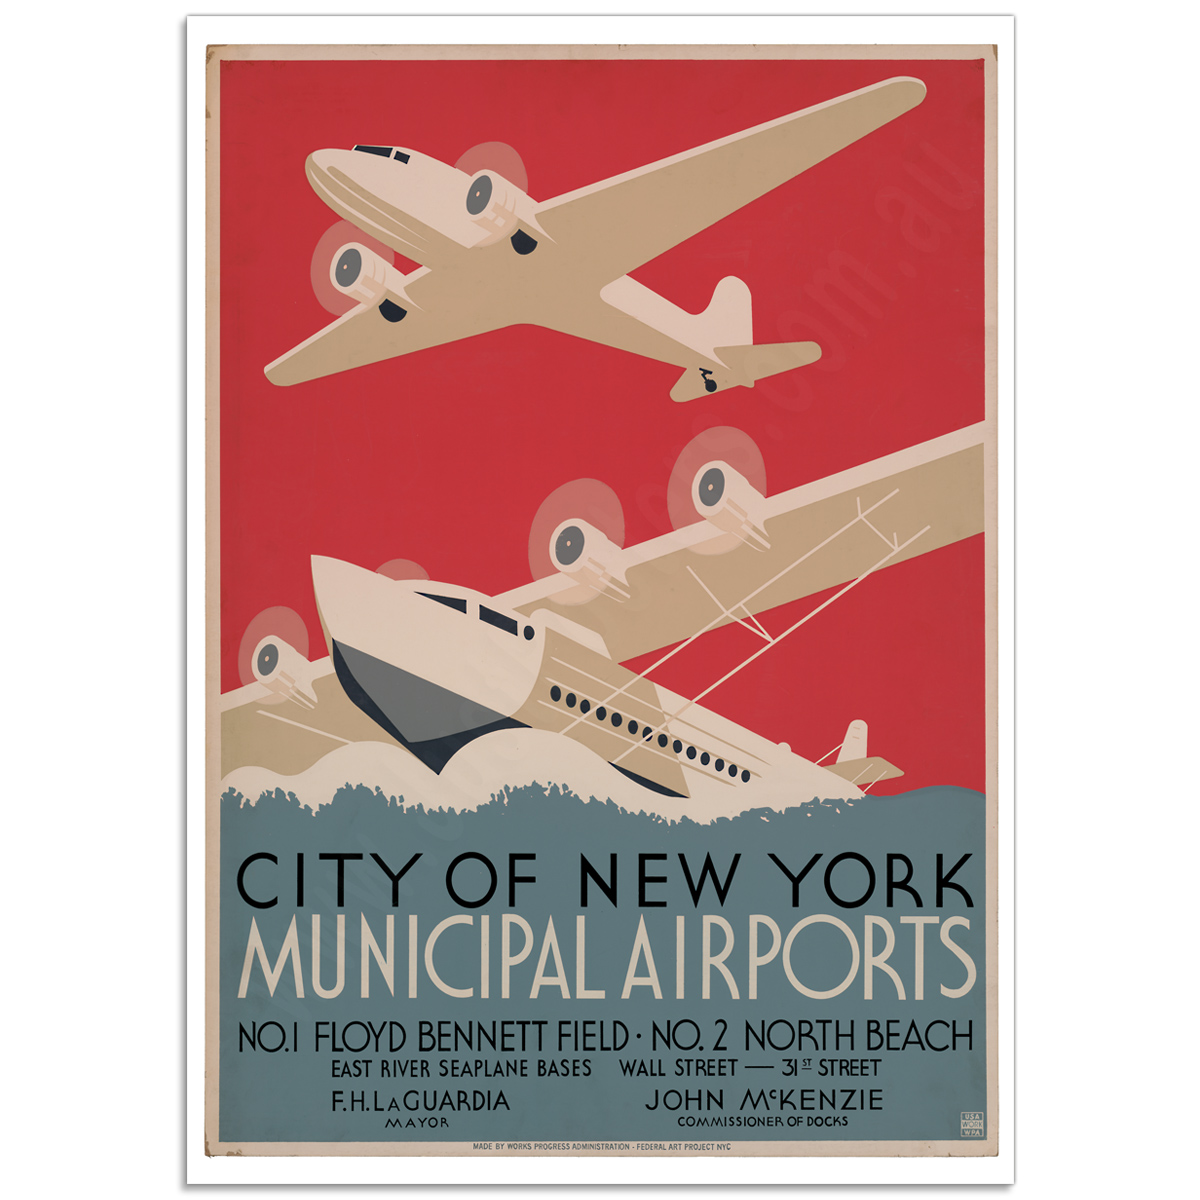 Vintage Travel Poster - NYC Municipal Airports,1937